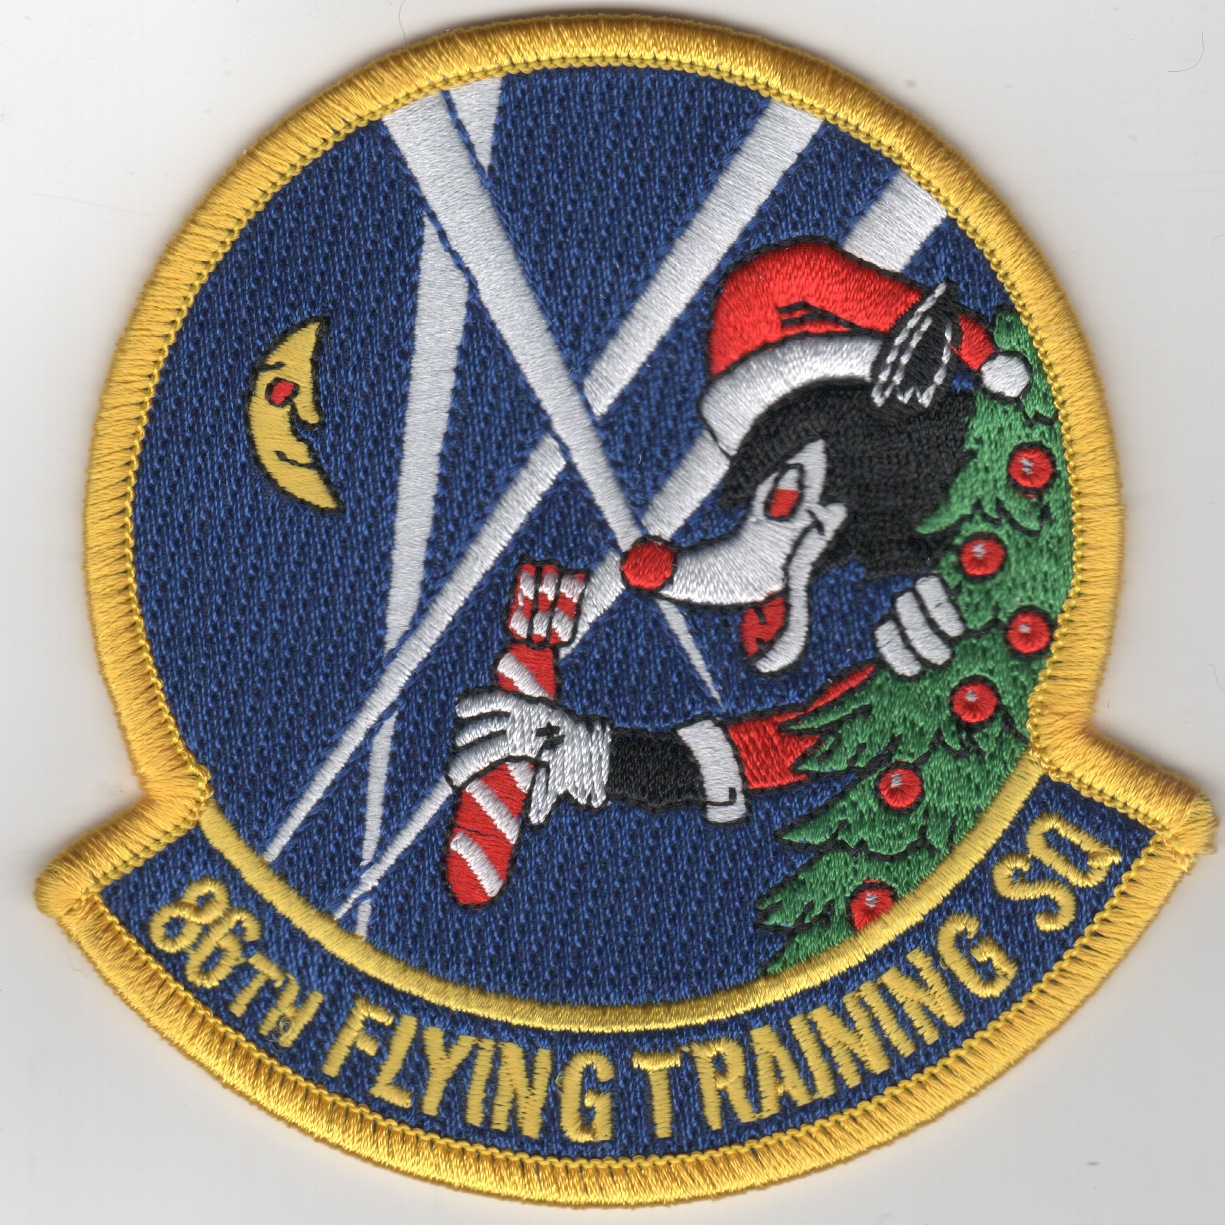 86FTS 'Christmas' Patch